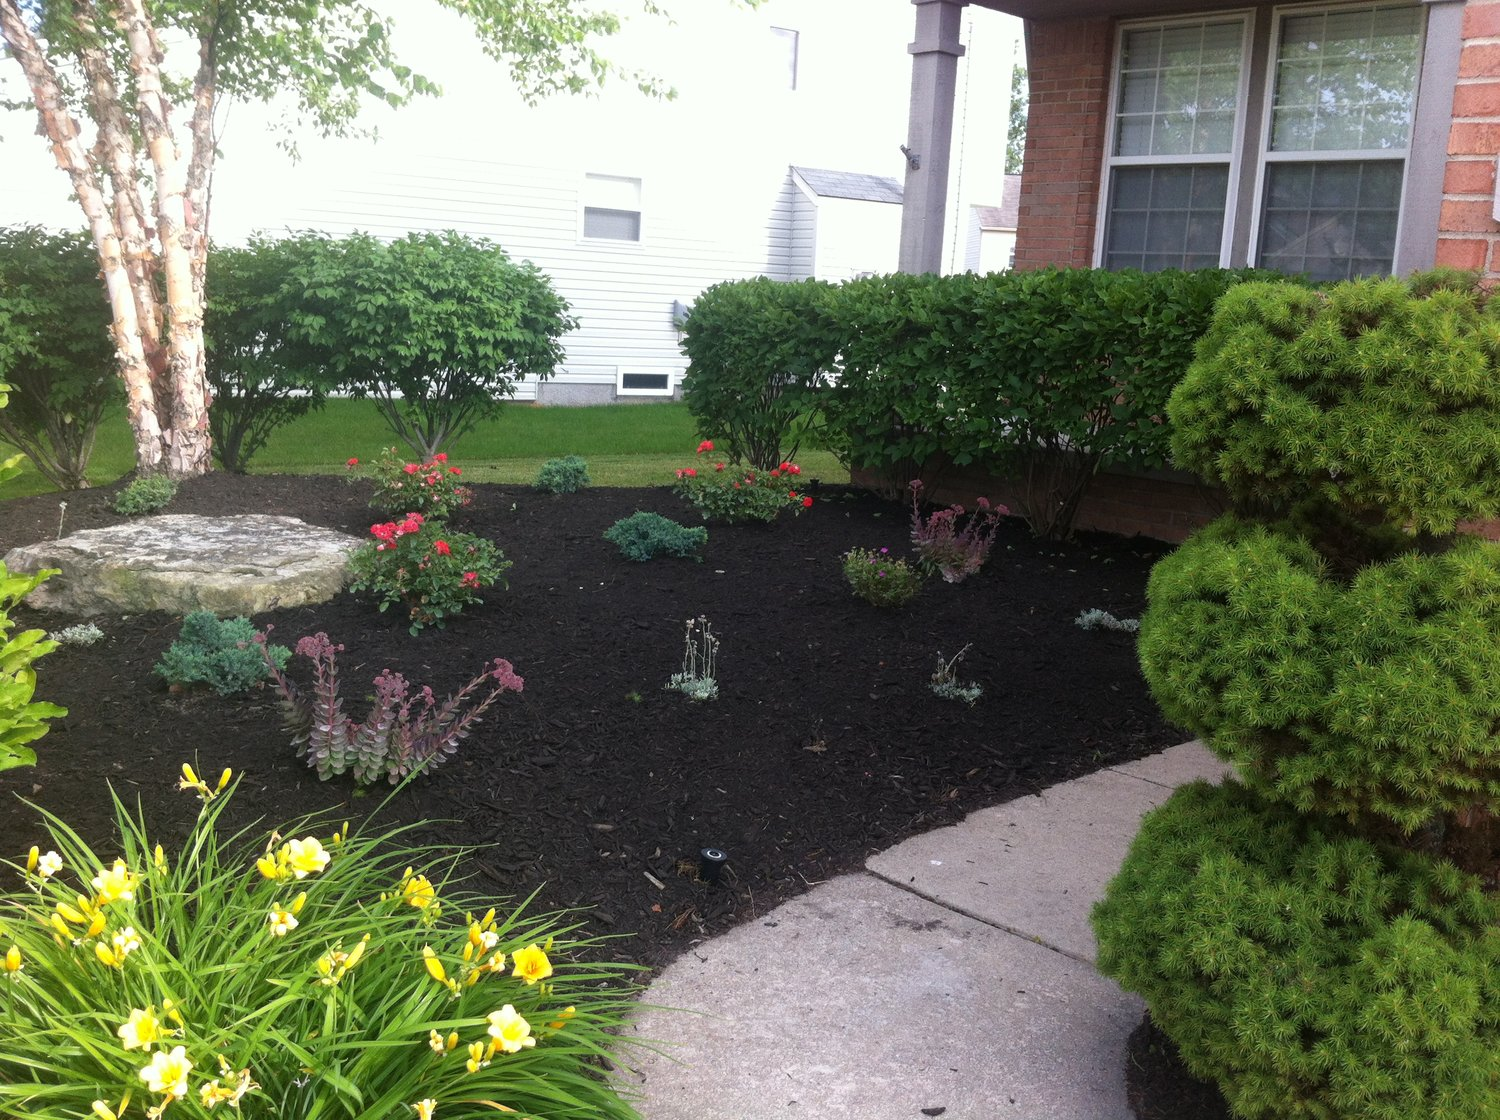 Providing Landscaping Services for Nearly 100 Years - Bulk Landscape Materials